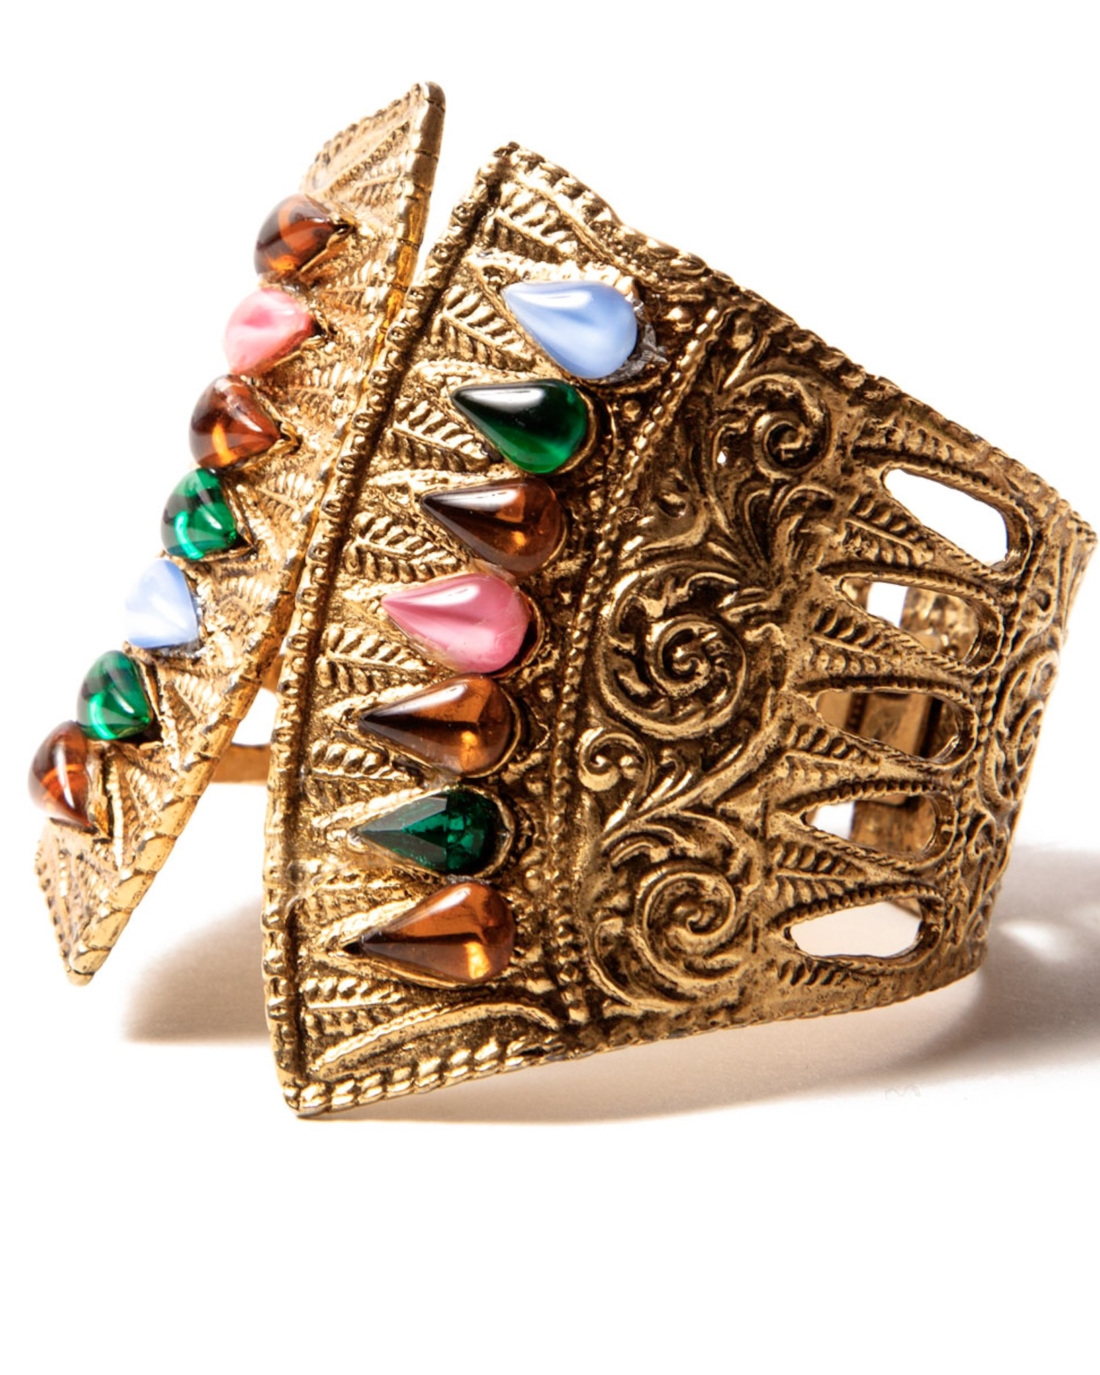 Egyptian Revival Gold Hinged Cuff Bracelet, By Hobe, circa 1960's